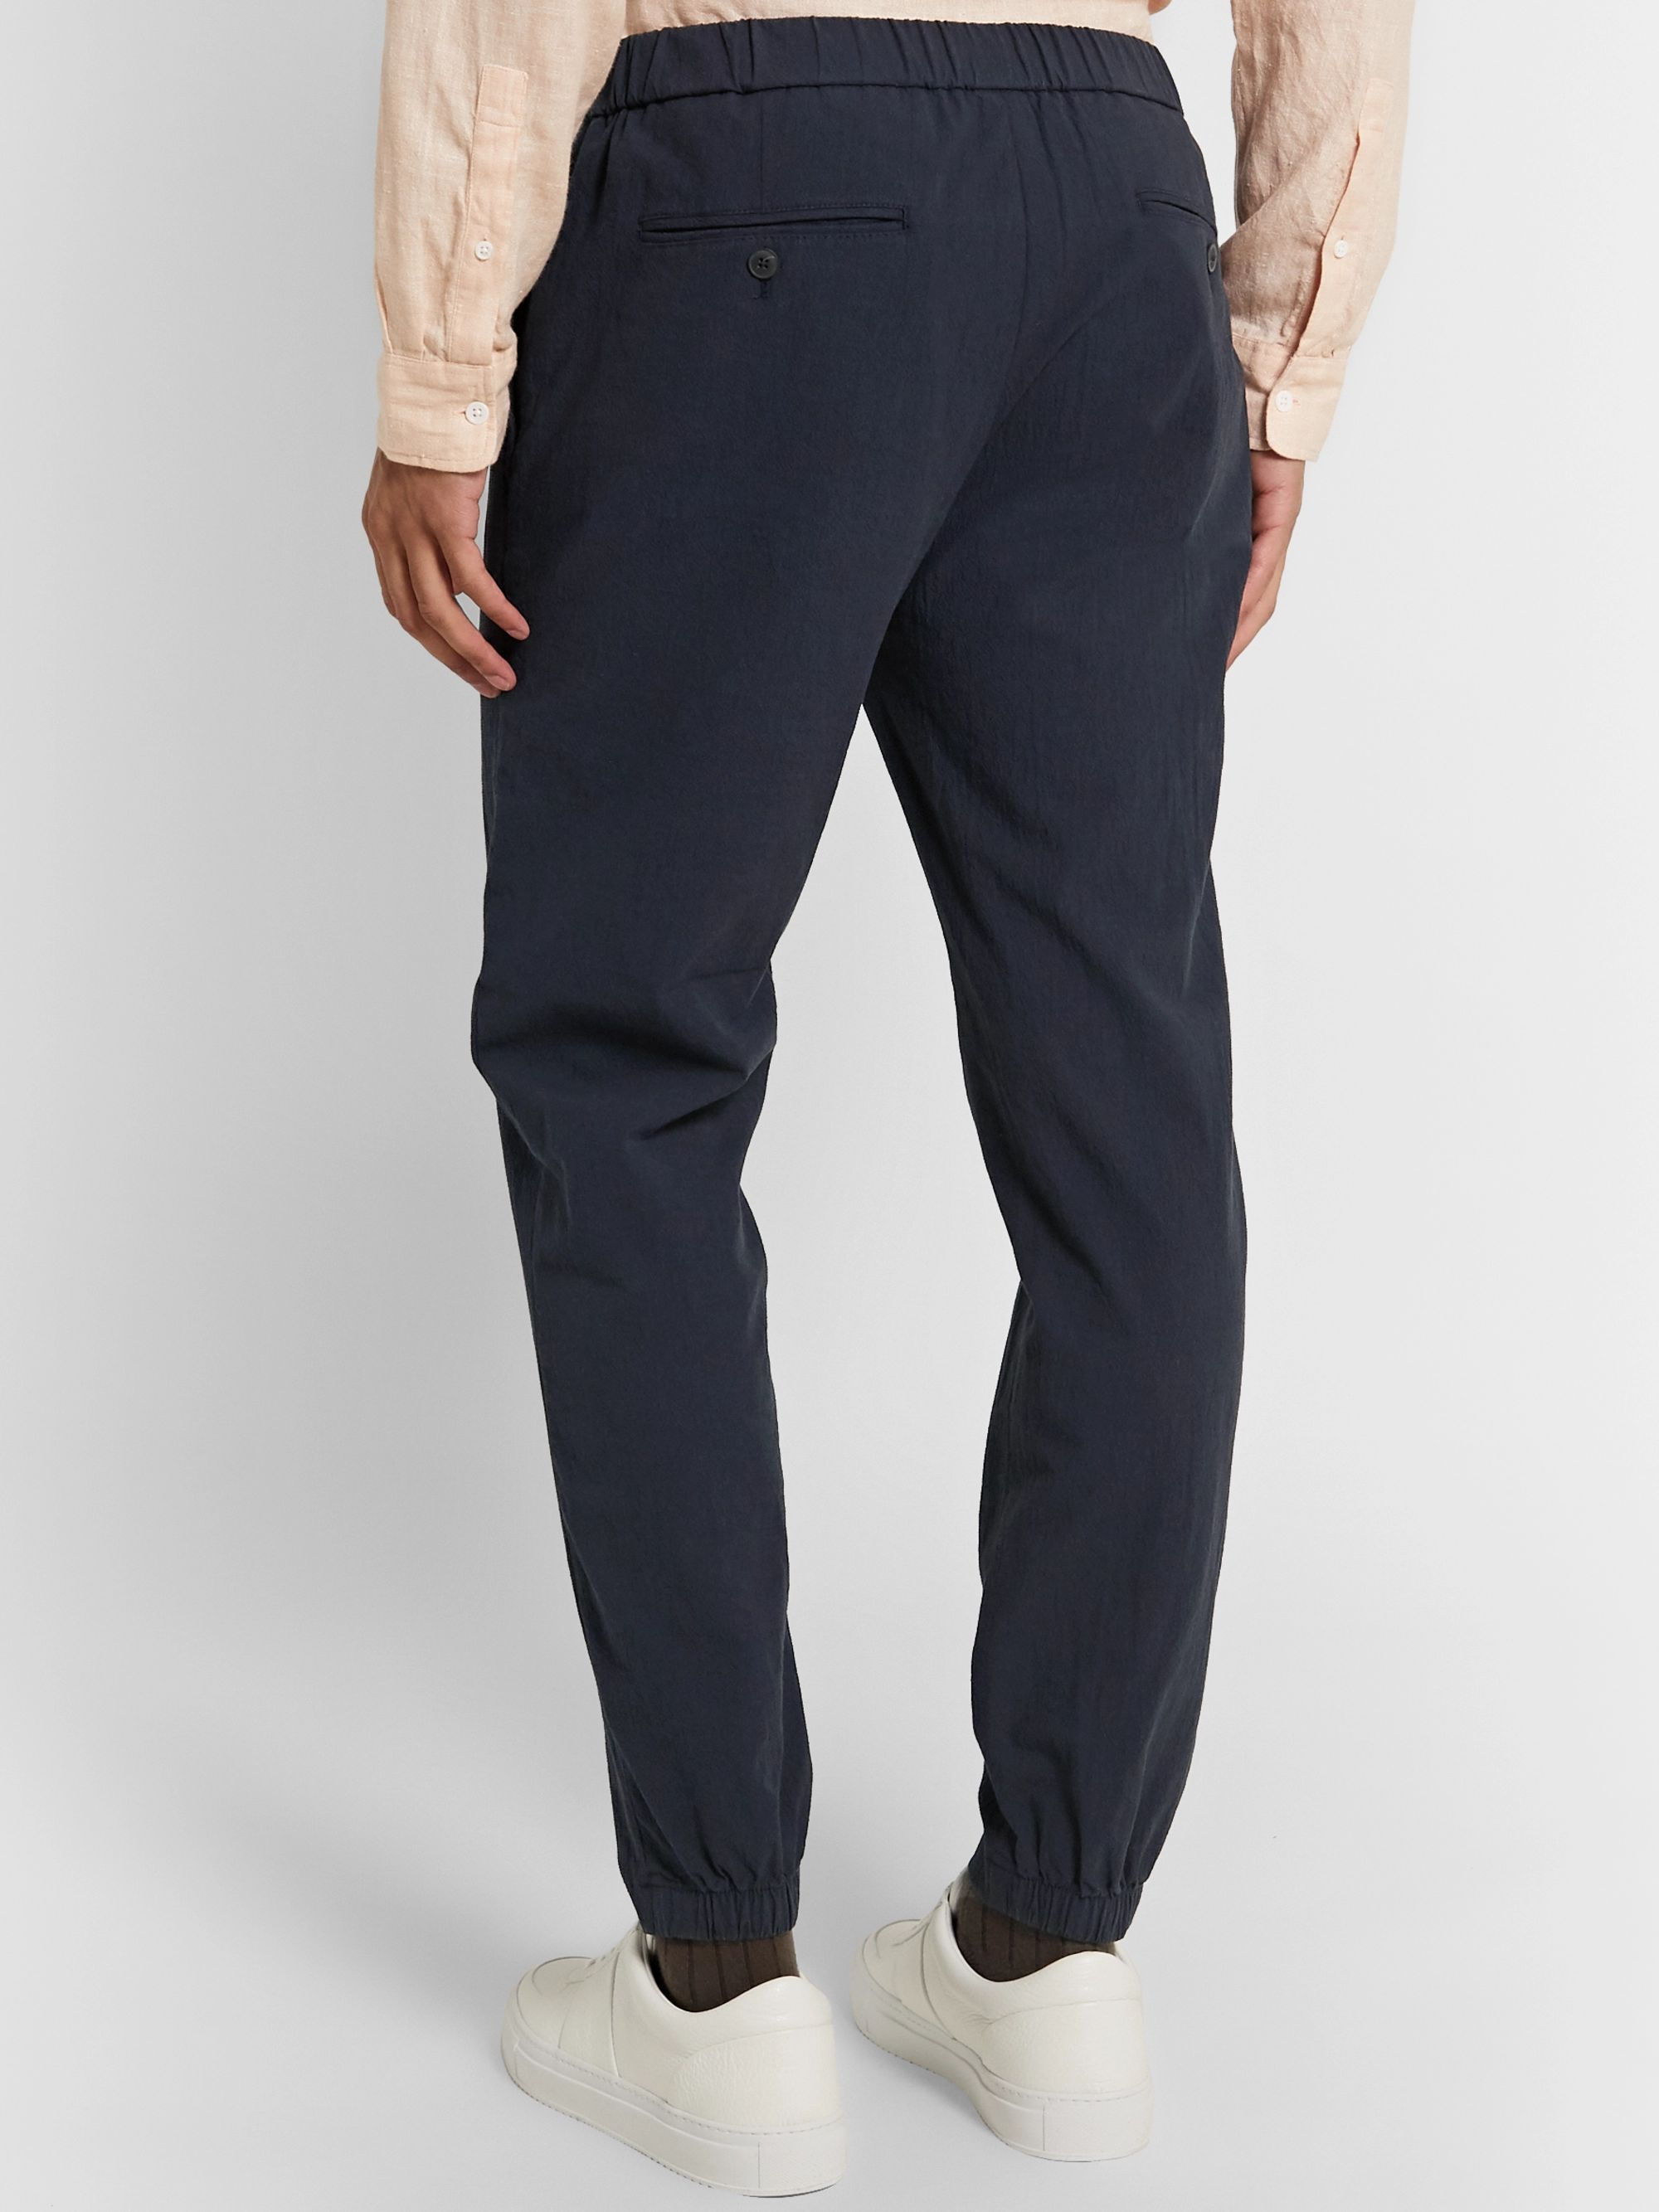 Club Monaco Lex Tapered Textured Cotton-Blend Trousers